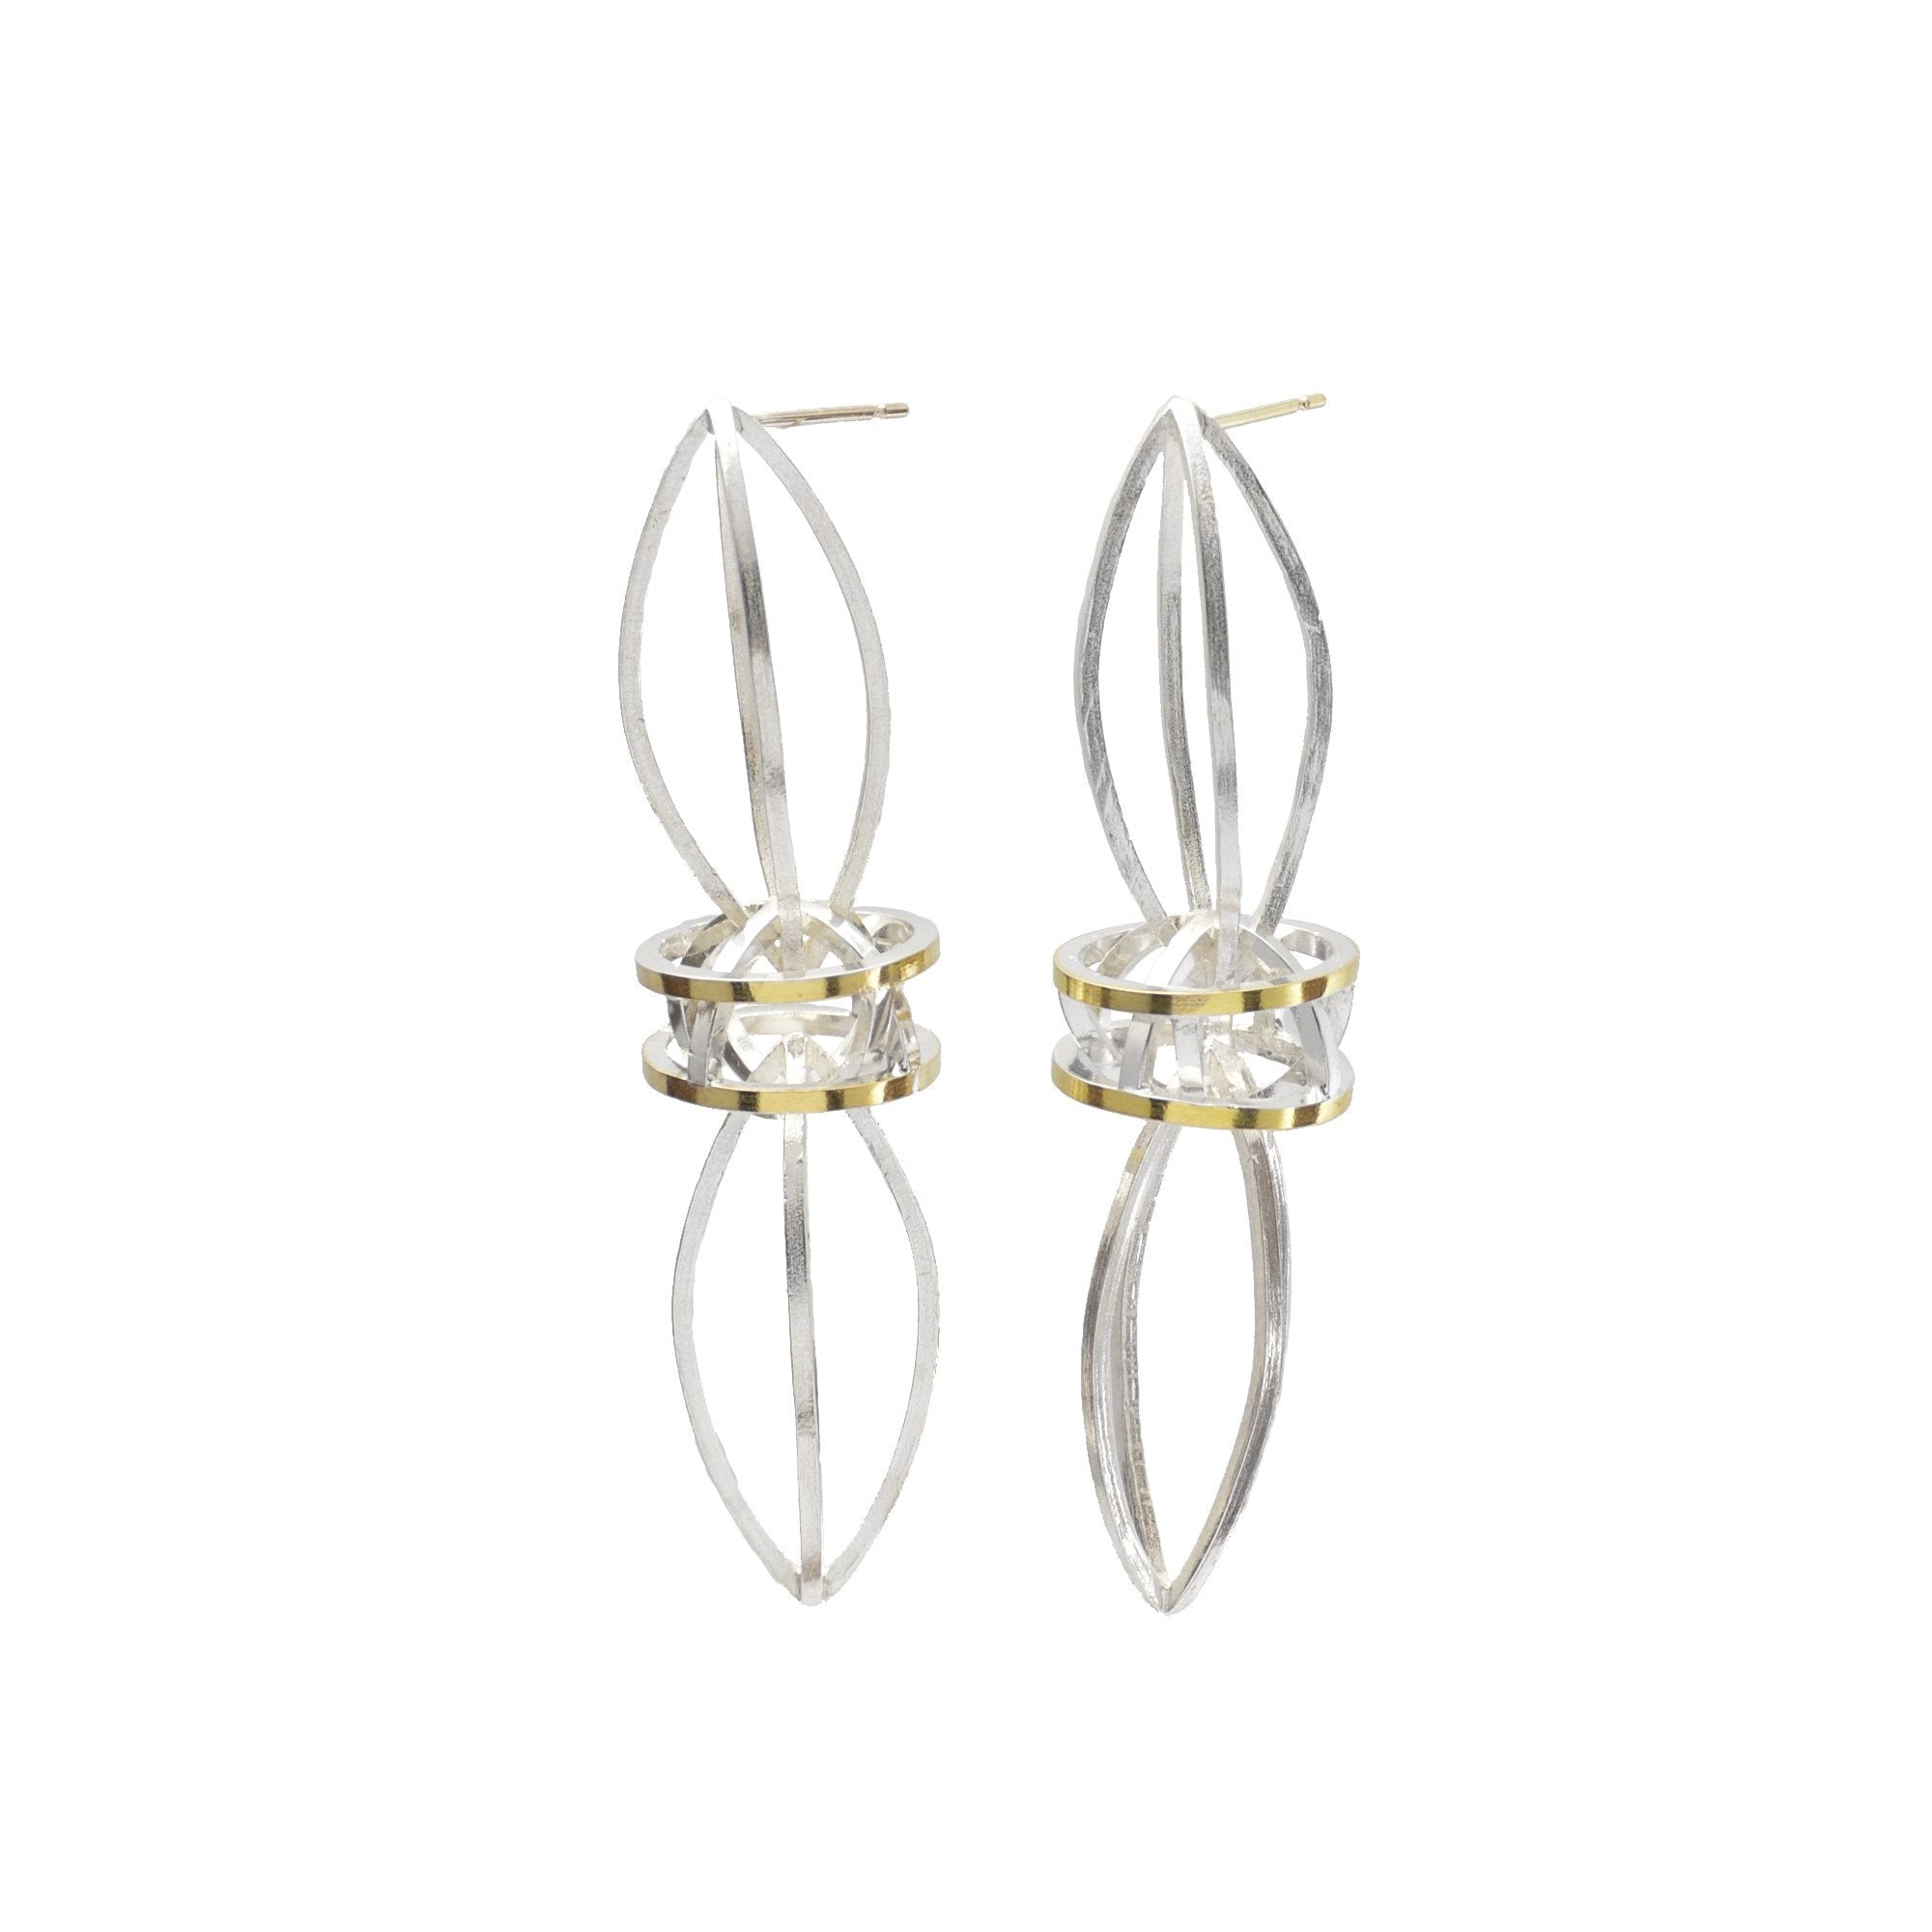 Double Lattis Earrings in 22k Gold, Shiny silver finish